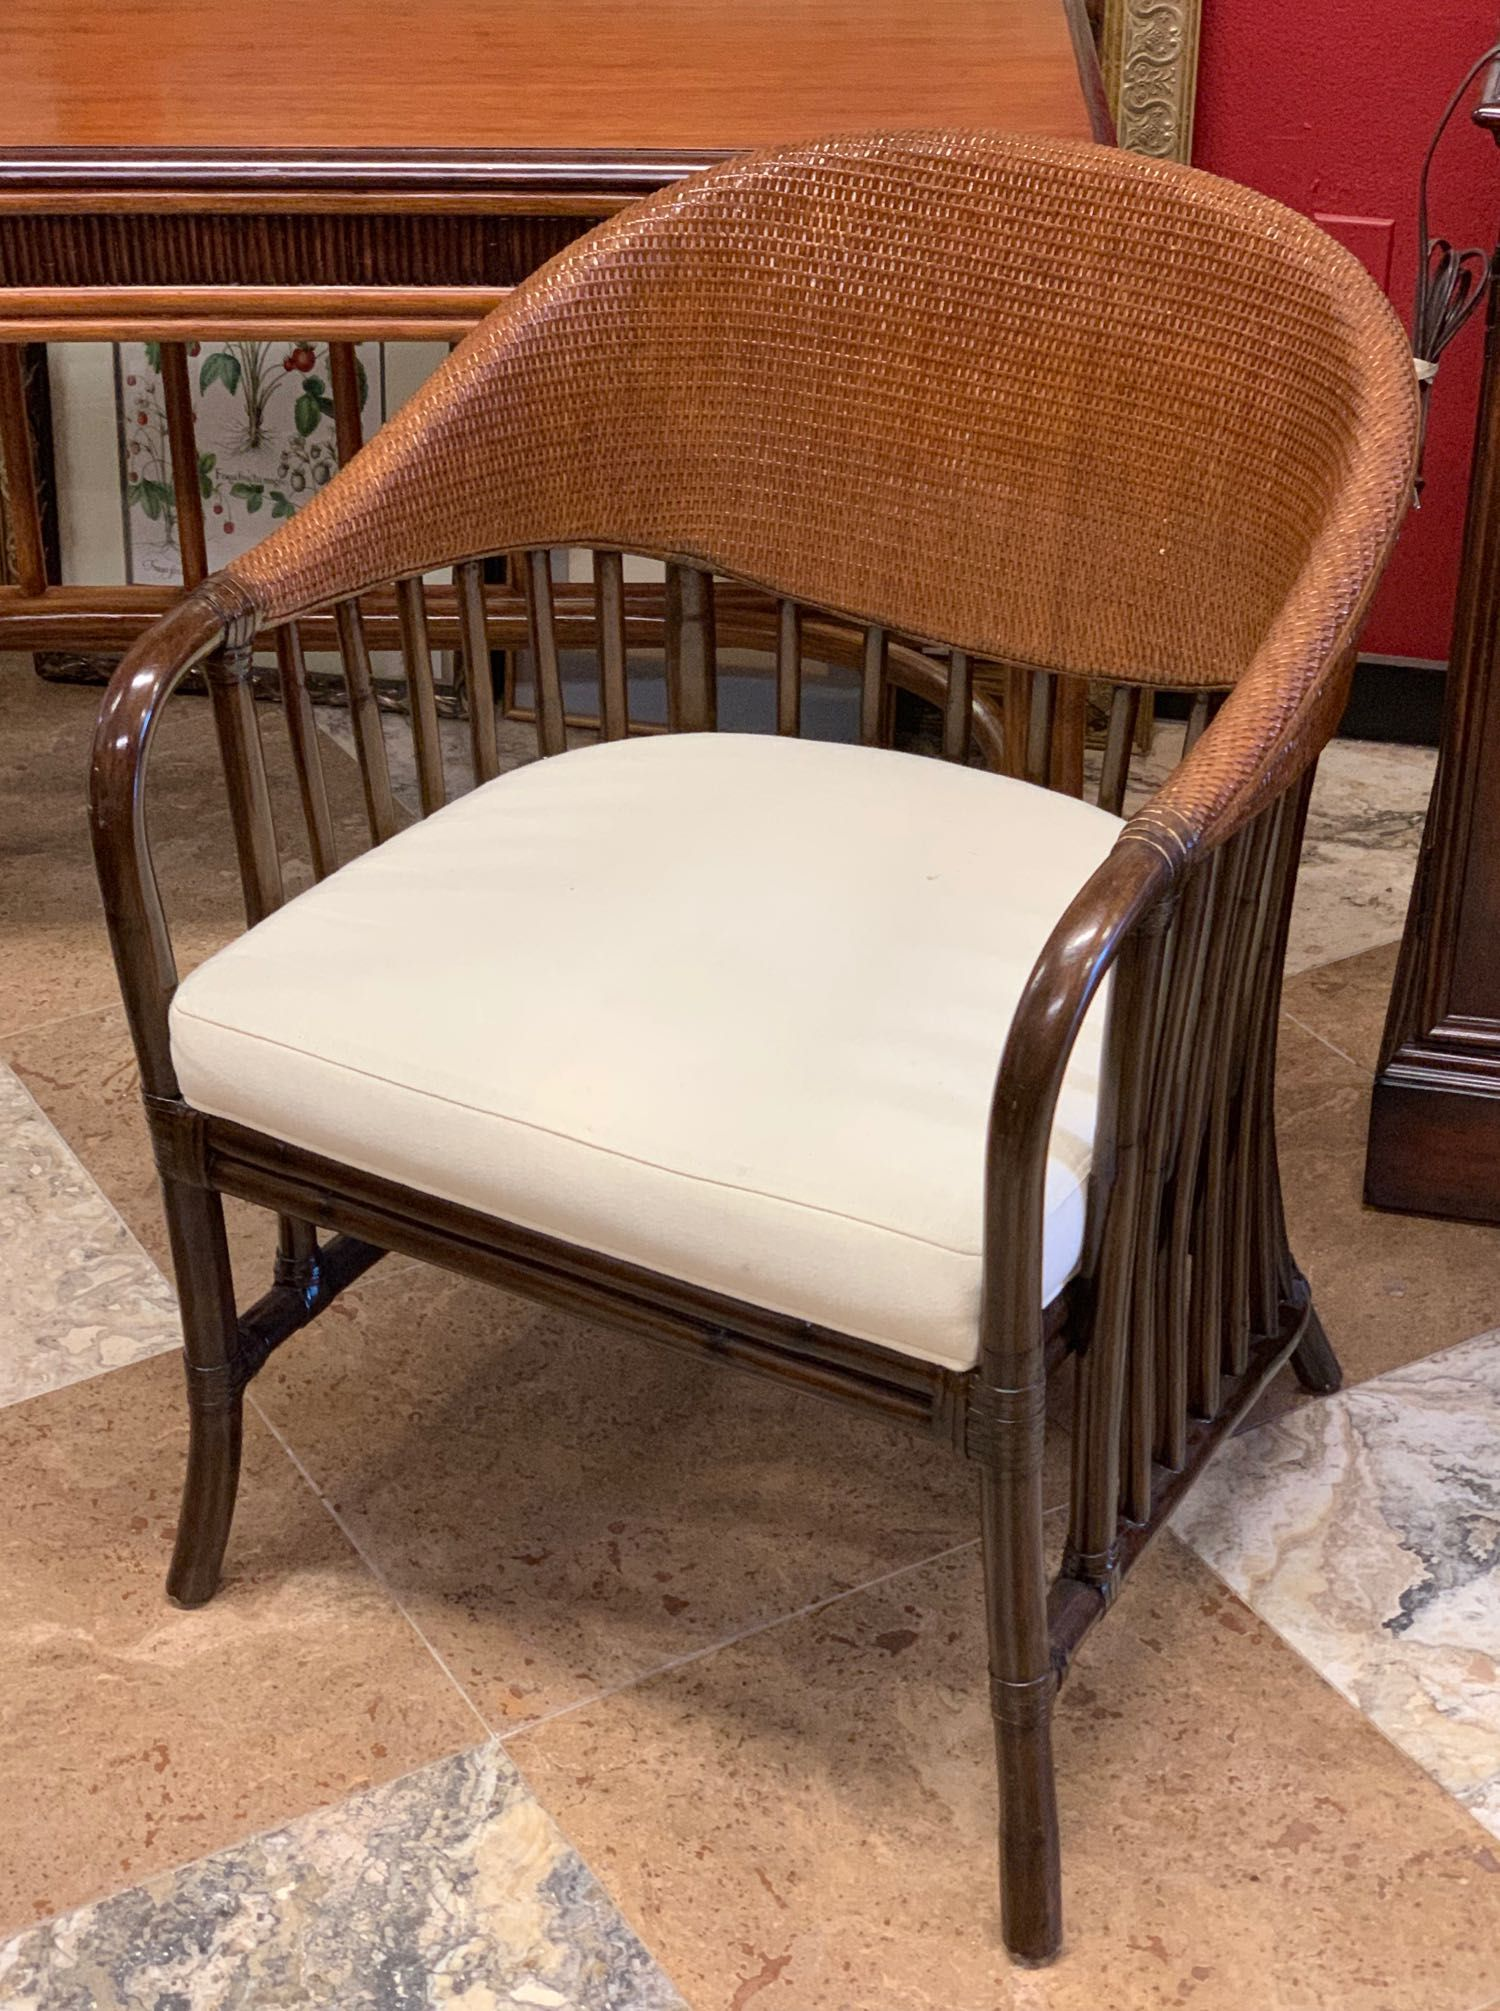 Single Rattan Accent Chair From Robb Stucky It Has A Great